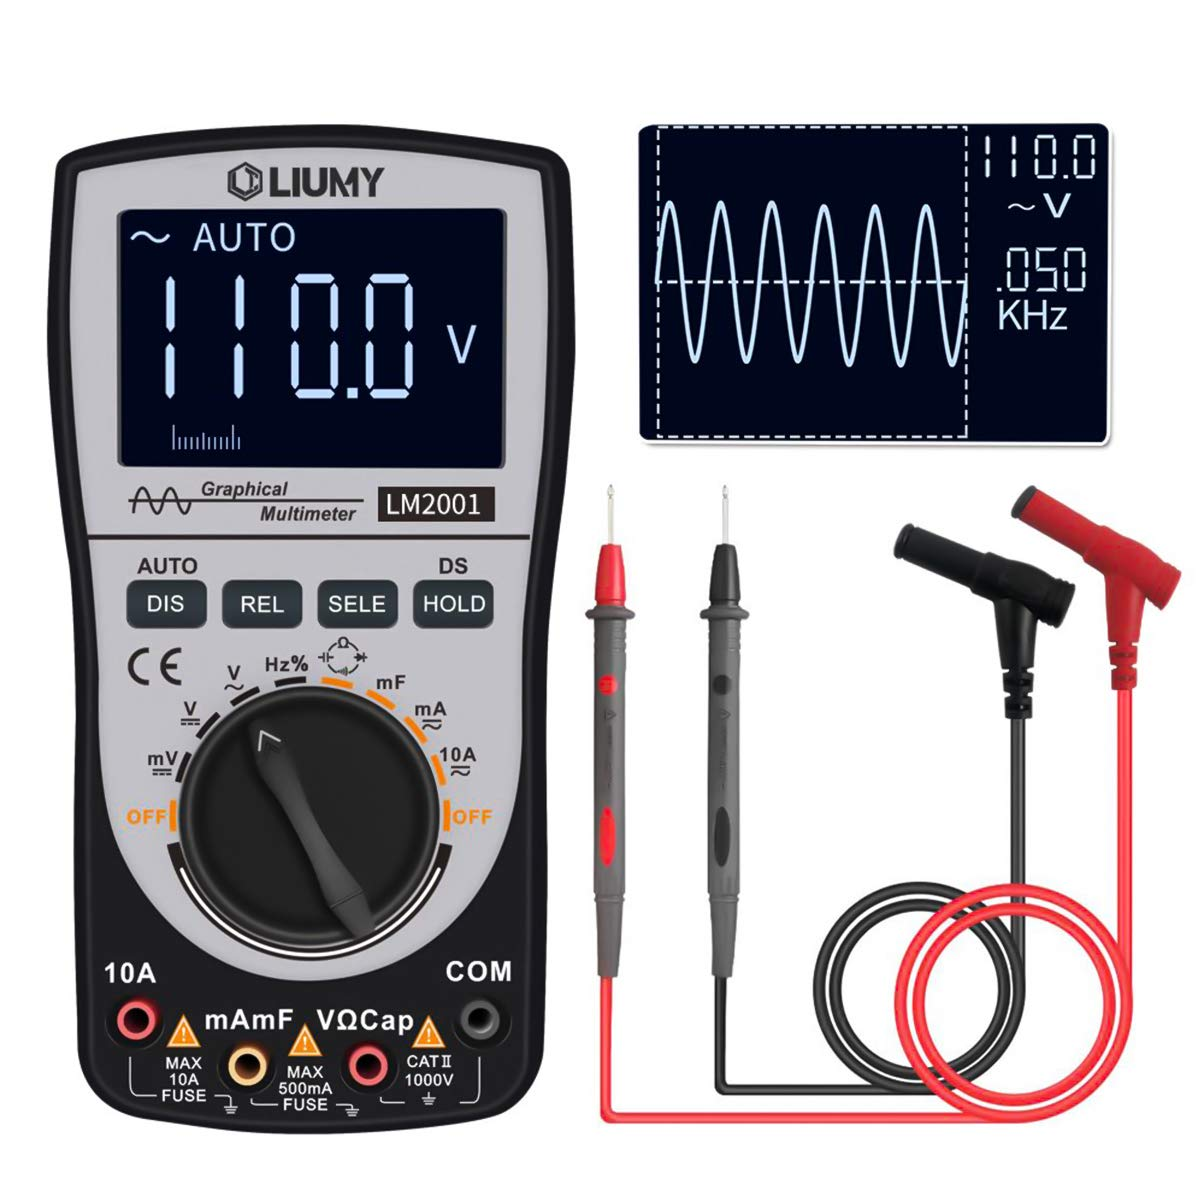 Oscilloscope Multimeter 2.0 Update,LIUMY Professional LED Handheld Oscilloscope Multimeter with 200ksps A/D Automatic Waveform Capture Function,DC/AC Voltage/Current Test,HD Display with Backlight by LIUMY